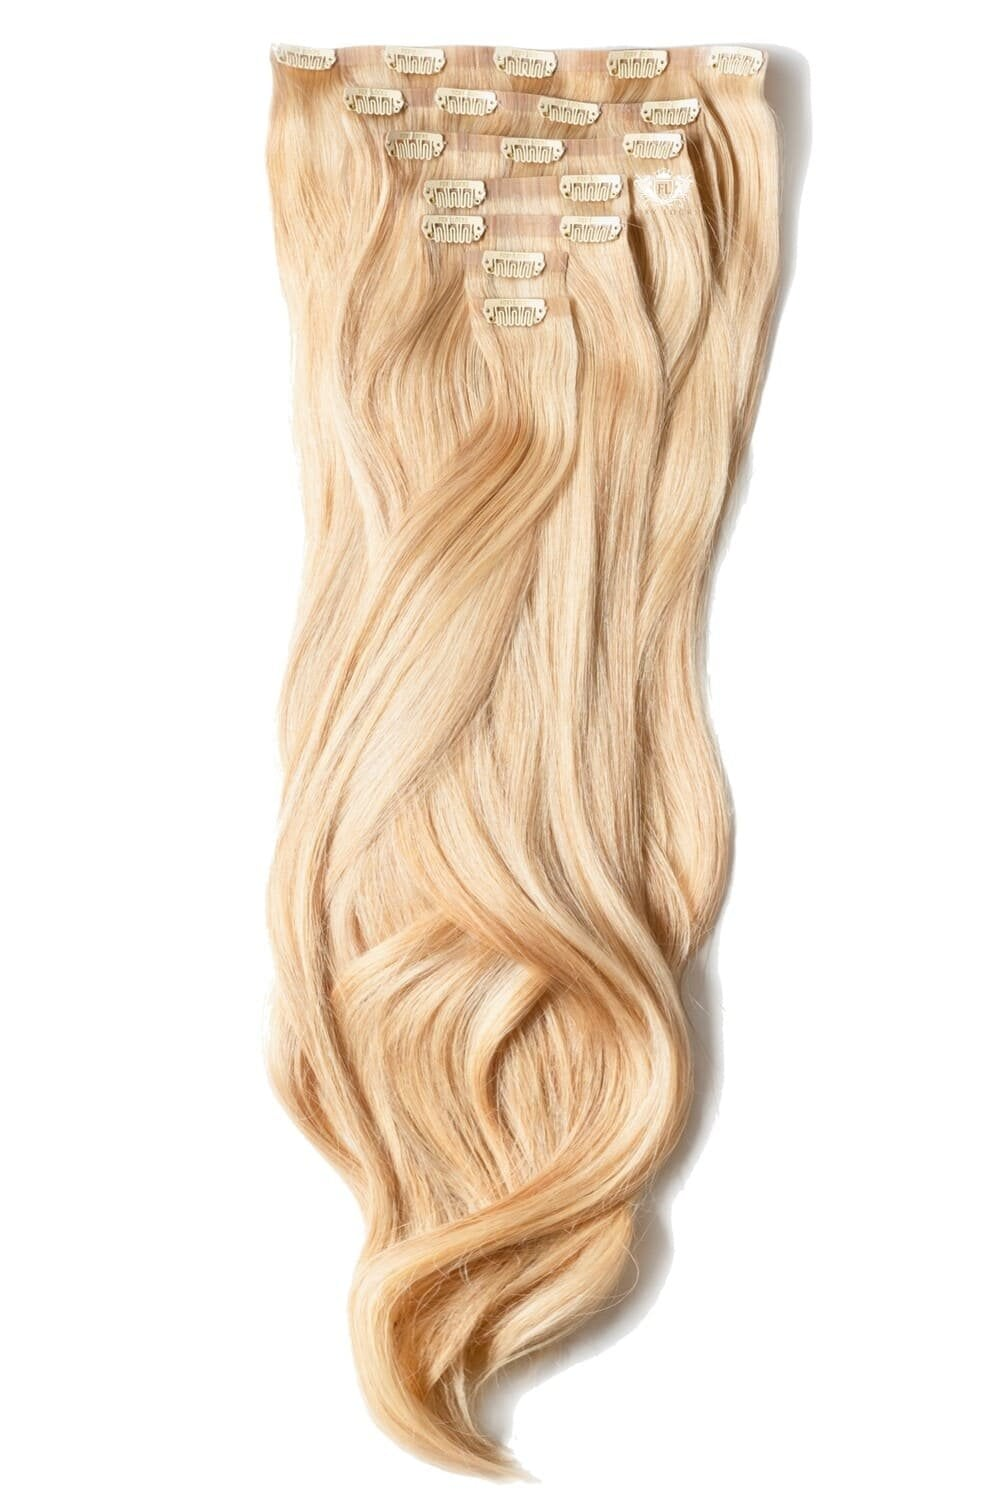 Sandy Luxurious Seamless 24 Clip In Human Hair Extensions 280g